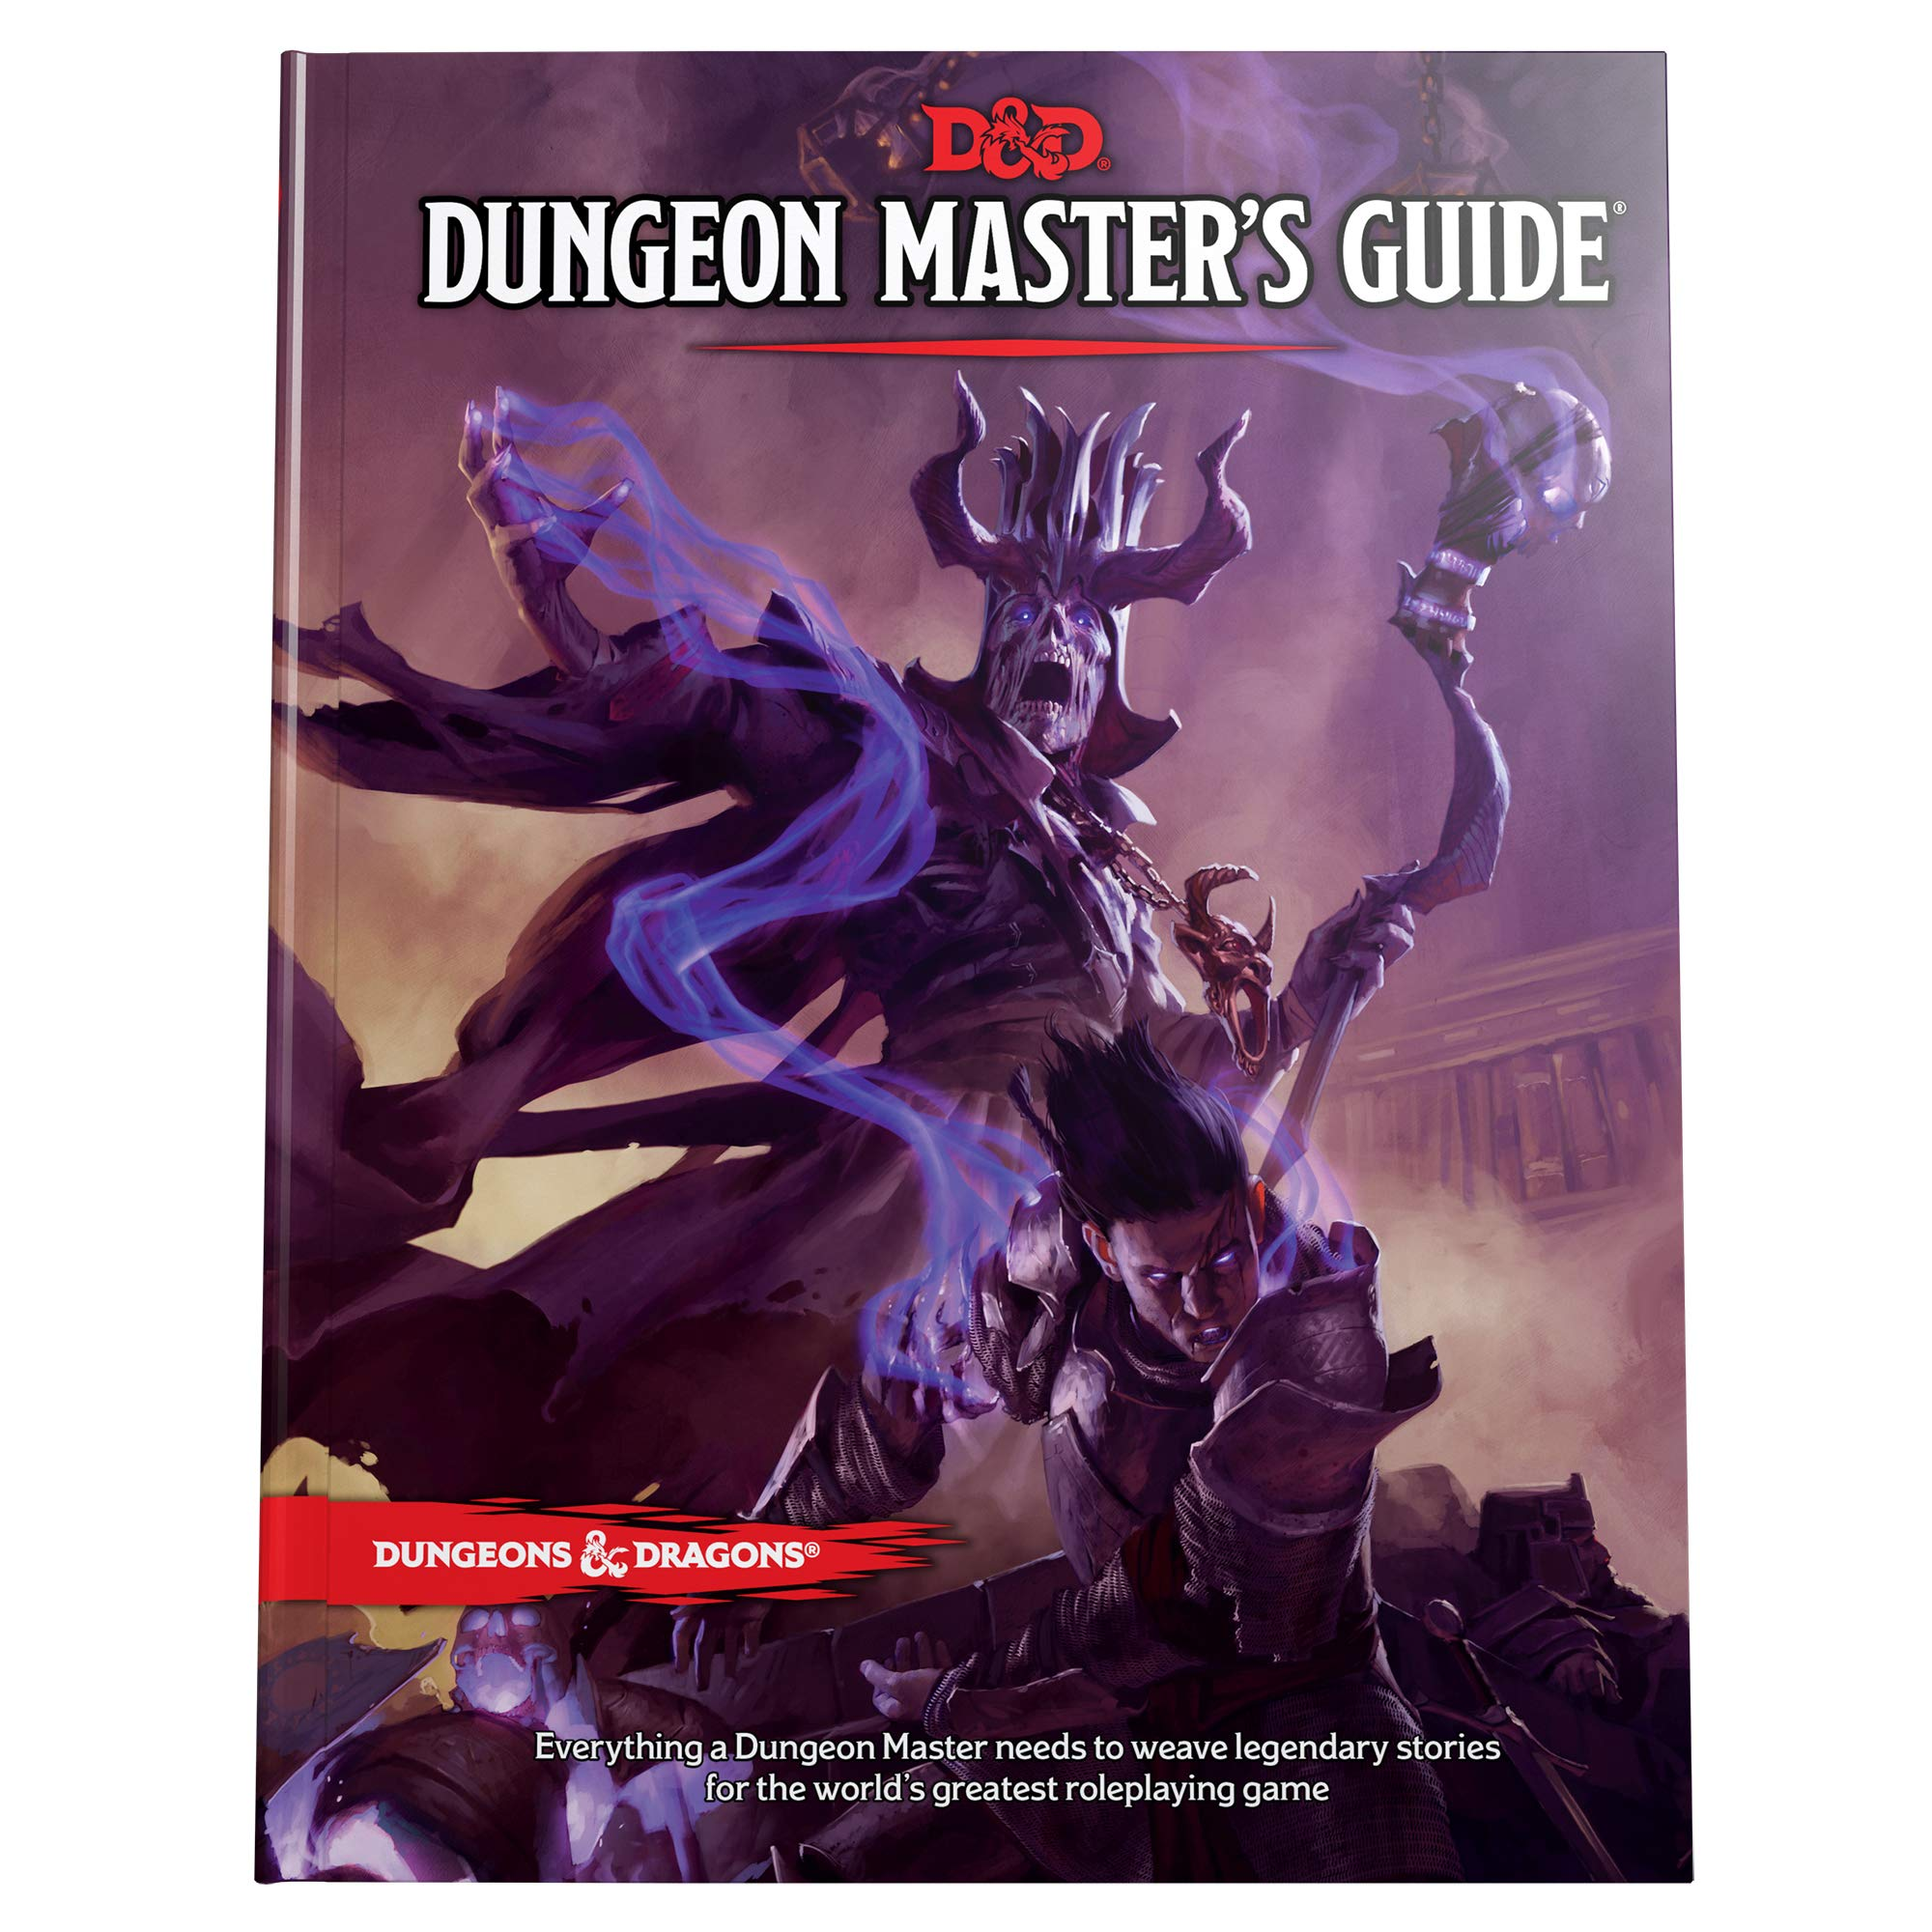 Dungeons & Dragons Dungeon Master's Guide (Core Rulebook, D&D Roleplaying Game) by D&D